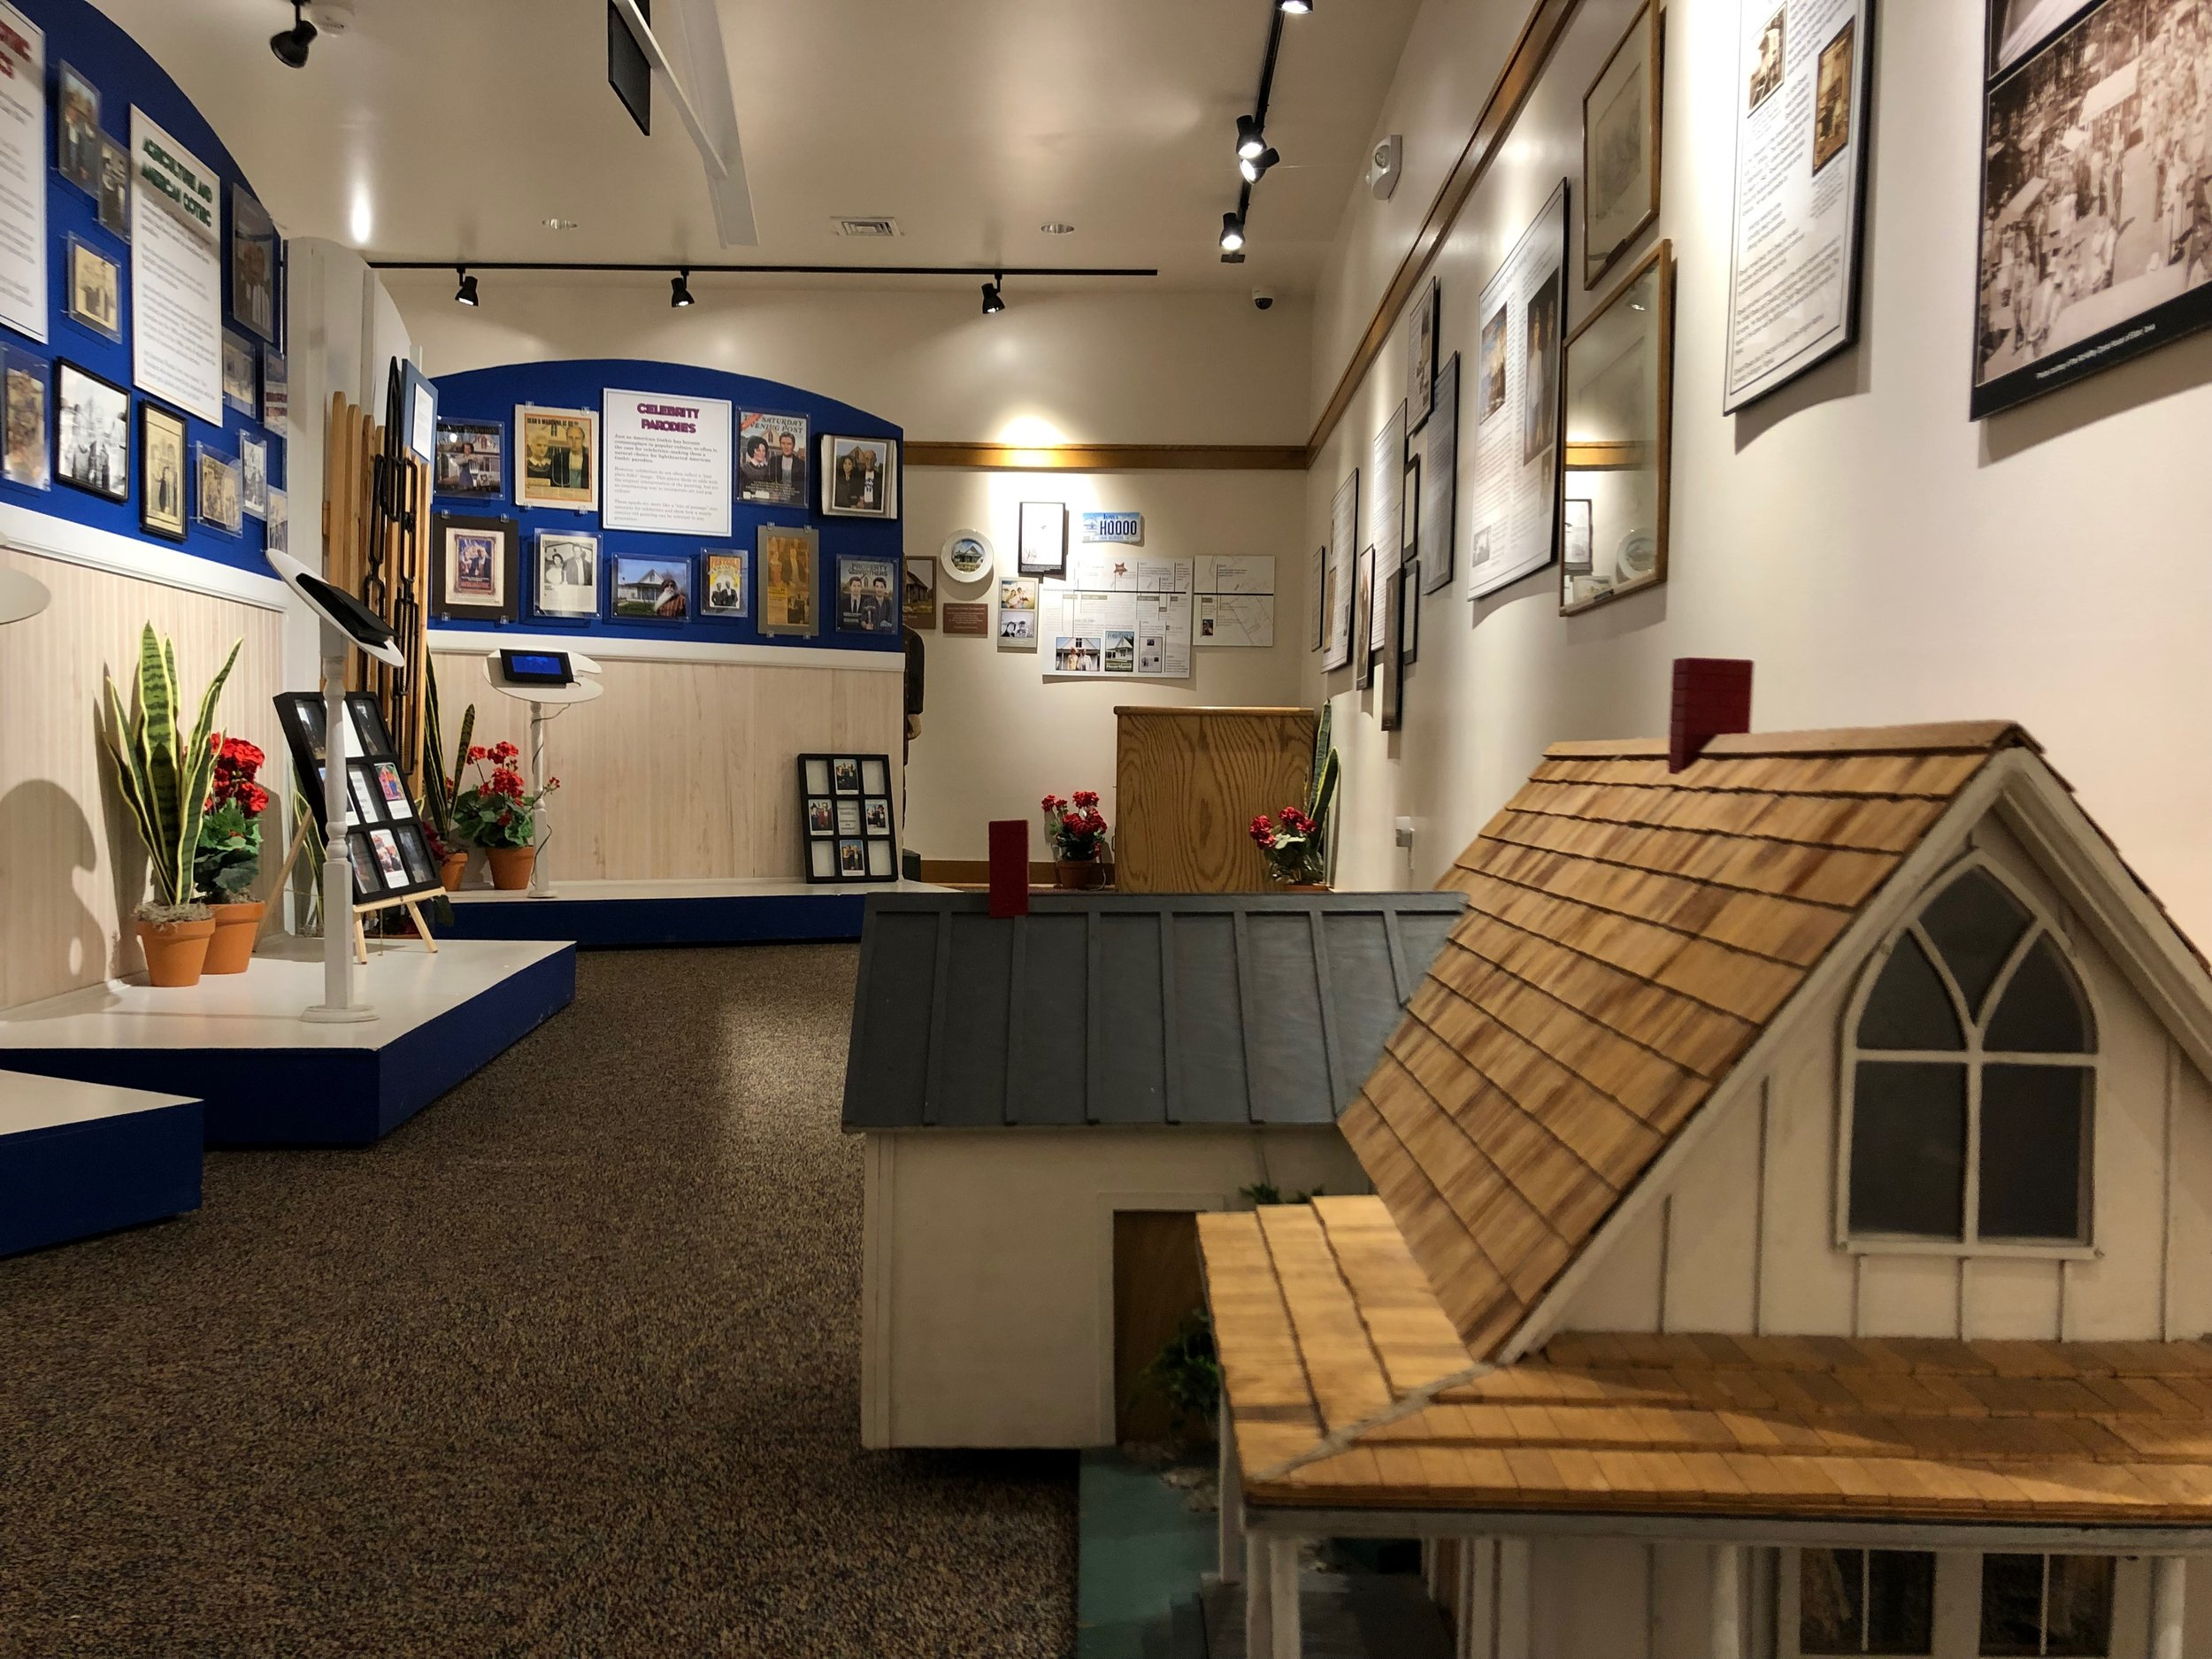 - Our center features an exhibition gallery about the history of the Gothic House, American Gothic, Grant Wood, and more.